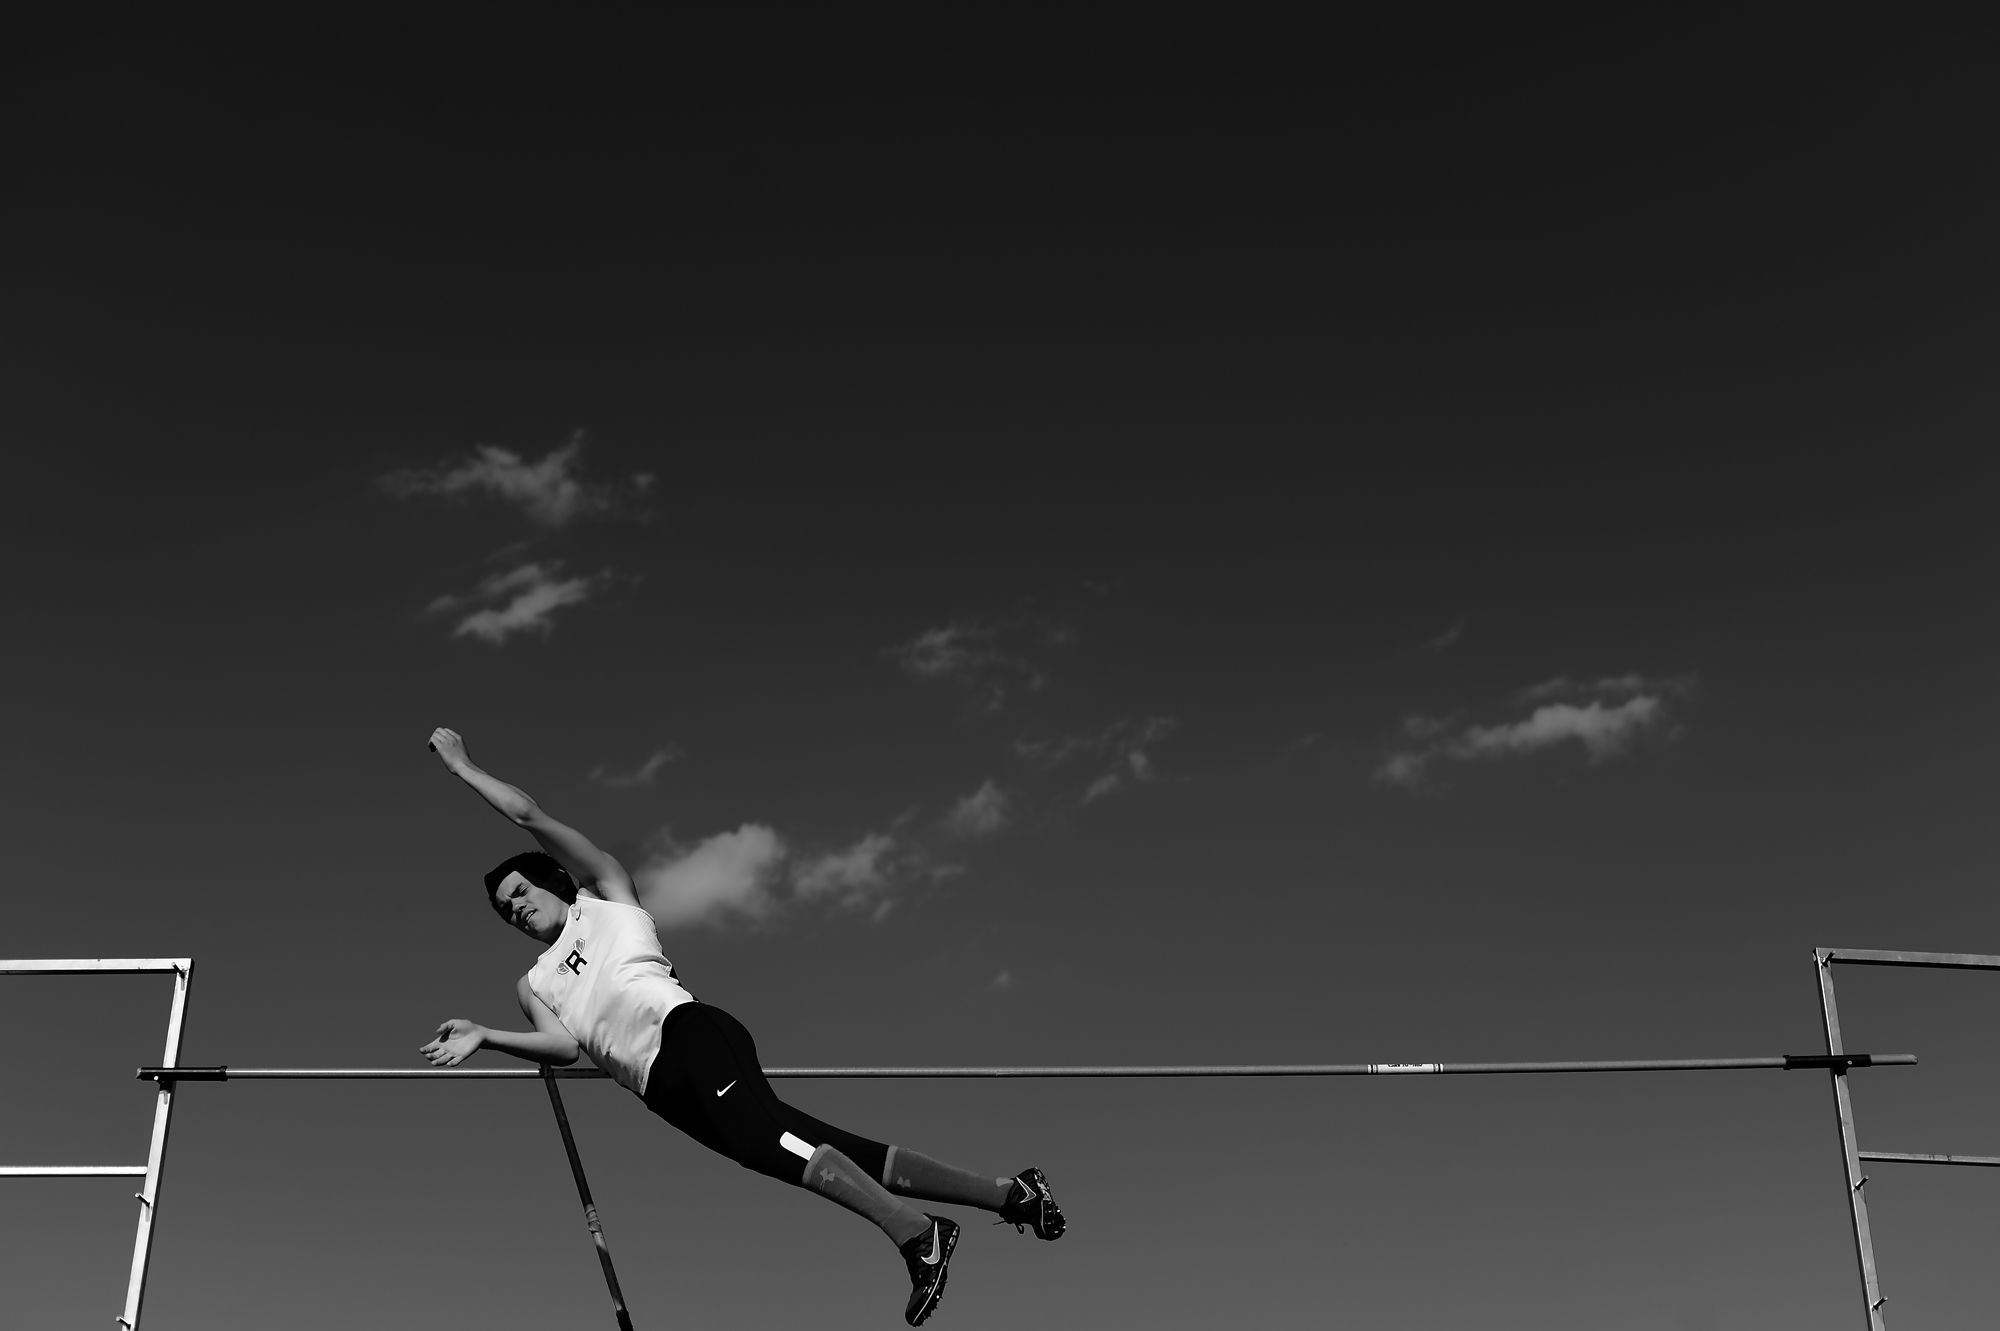 Dan Larkin of Reservoir High School competes in the pole vault competition on the second day of the Howard County Track Championships at Wilde Lake High School in Columbia, Maryland on May 6, 2014.